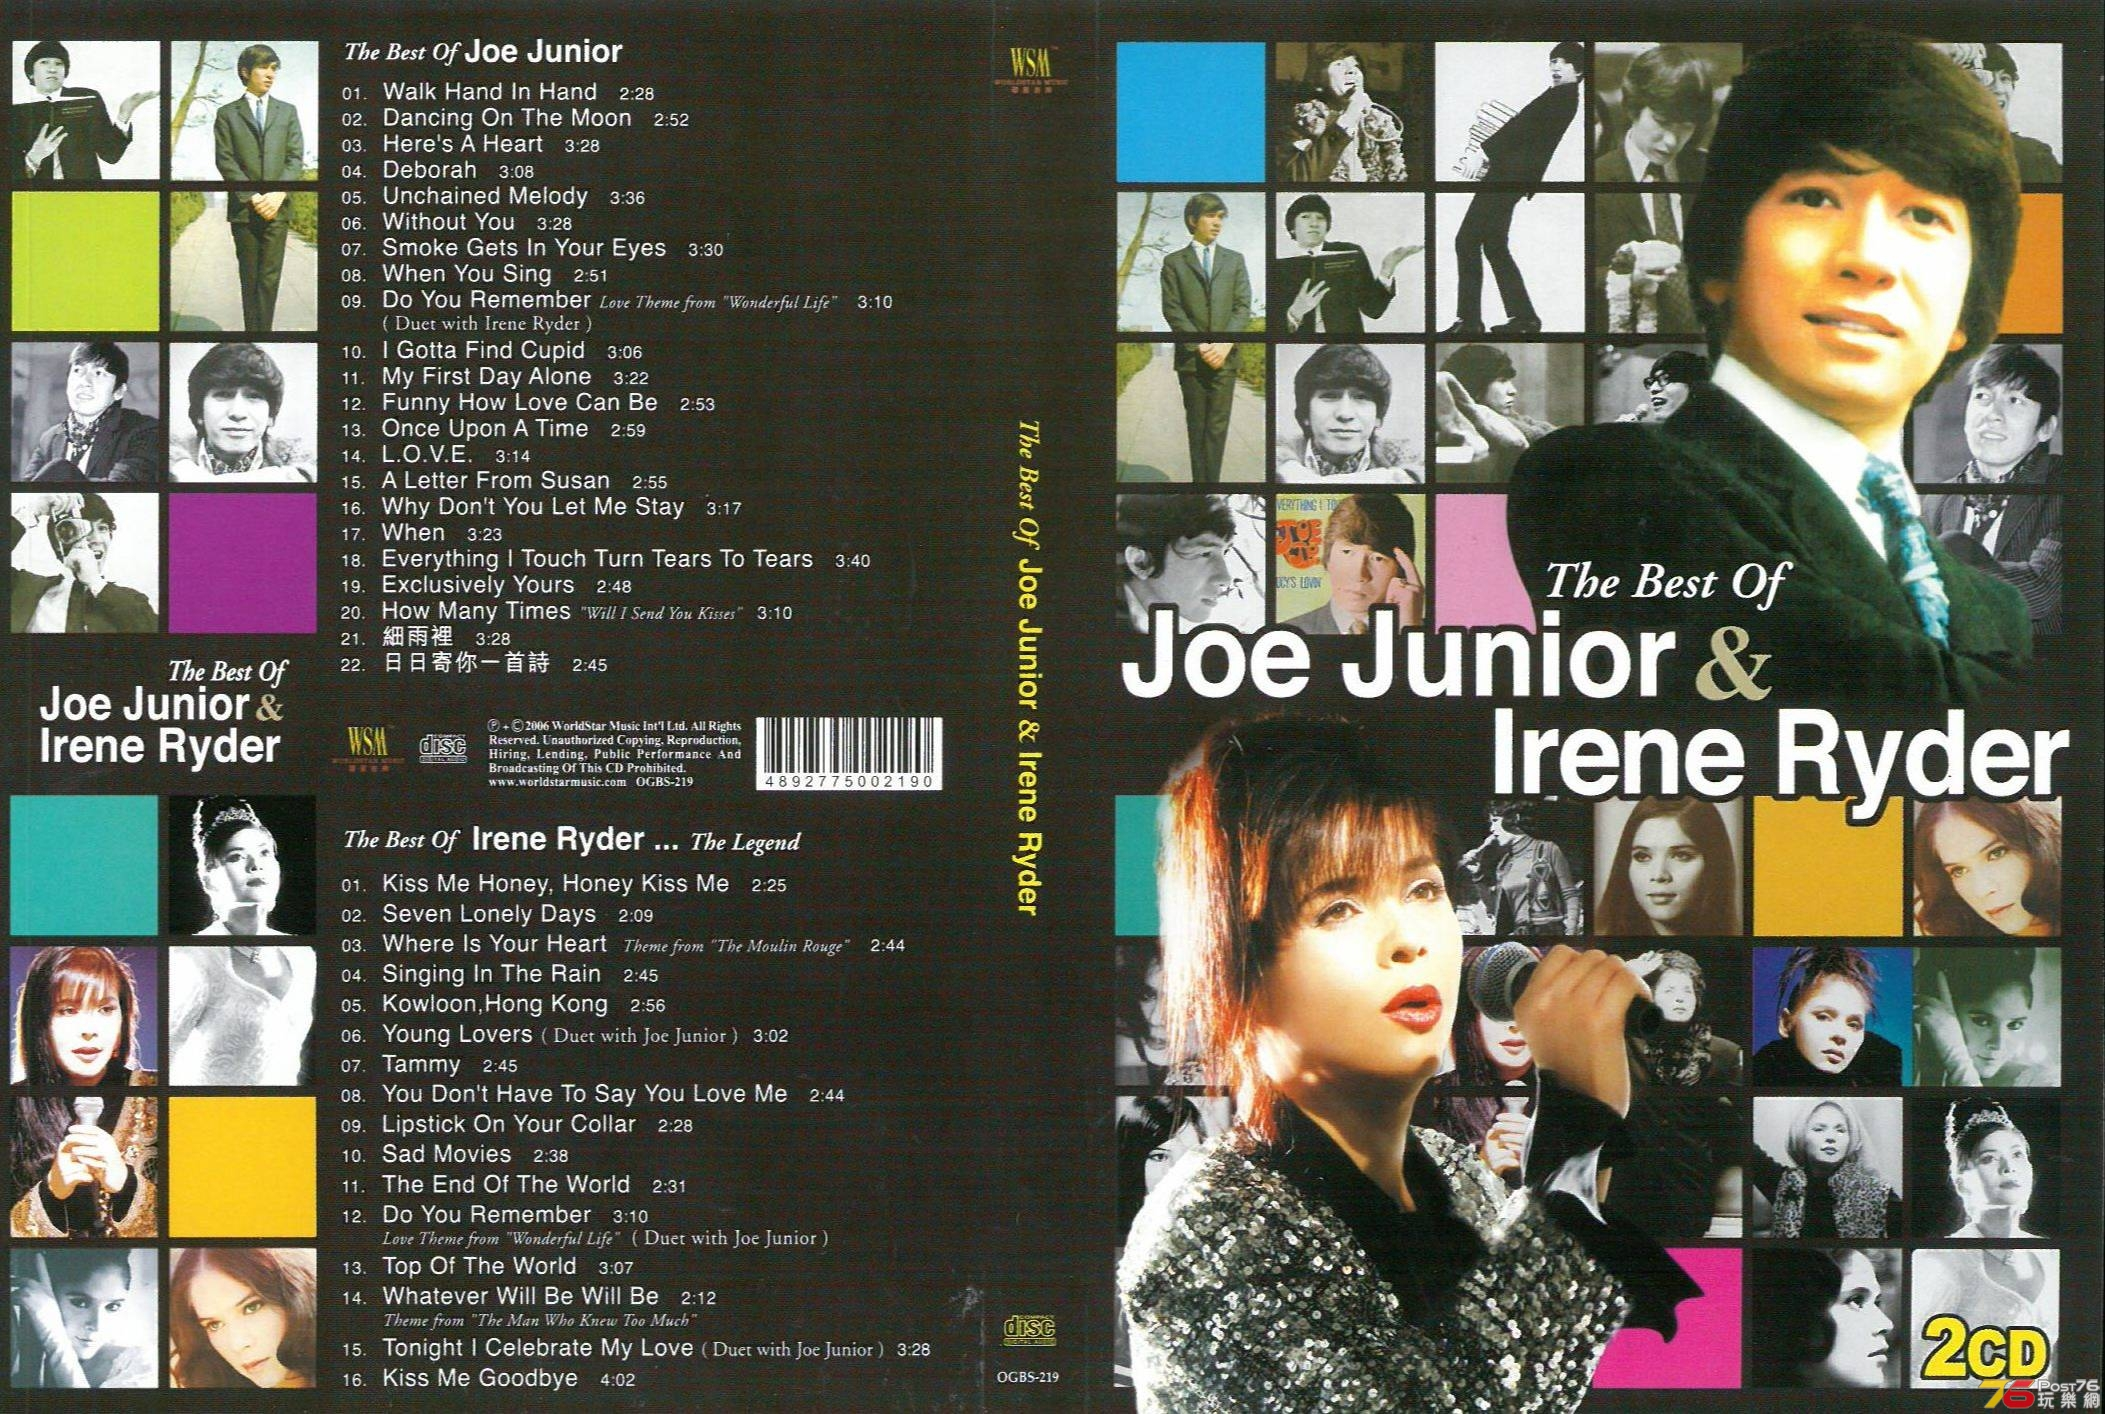 Joe Junior & Irene Ryder the Best Of a.jpg